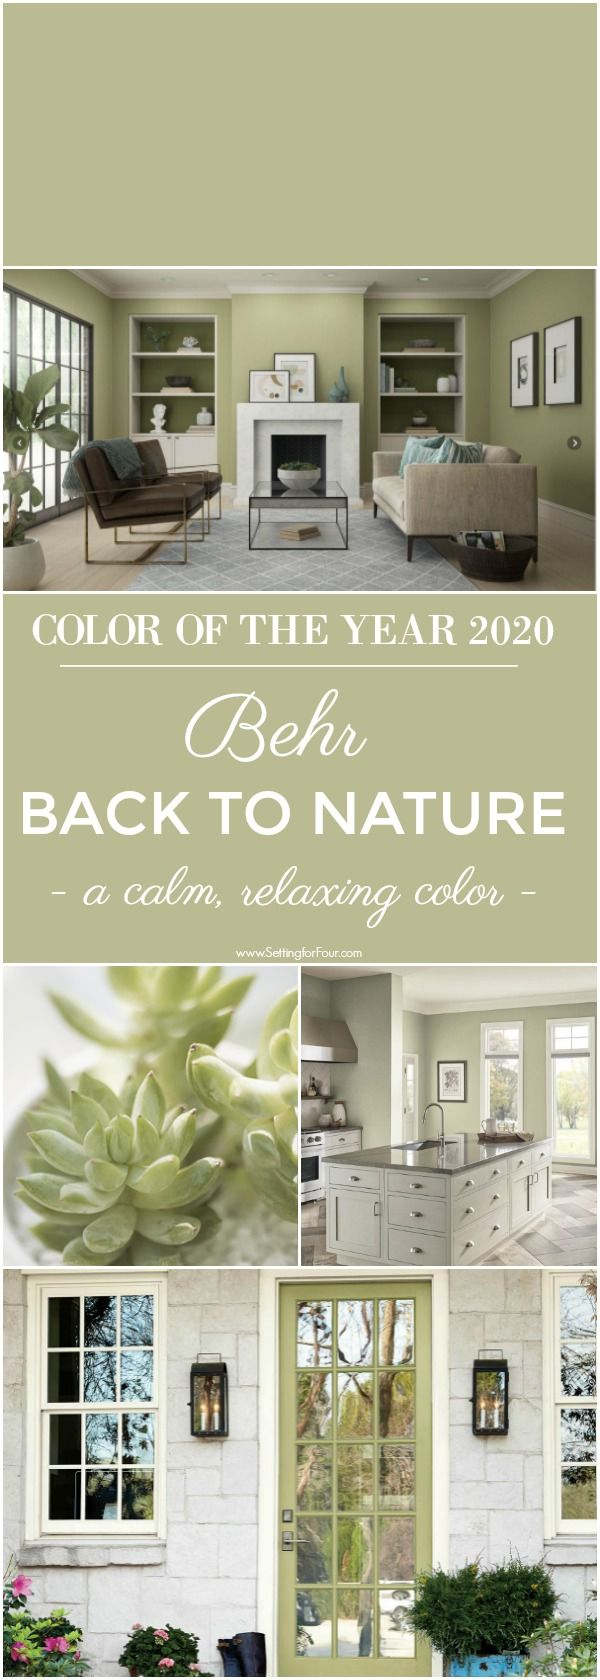 Behr Back To Nature Paint Color - Color Of The Year 2020